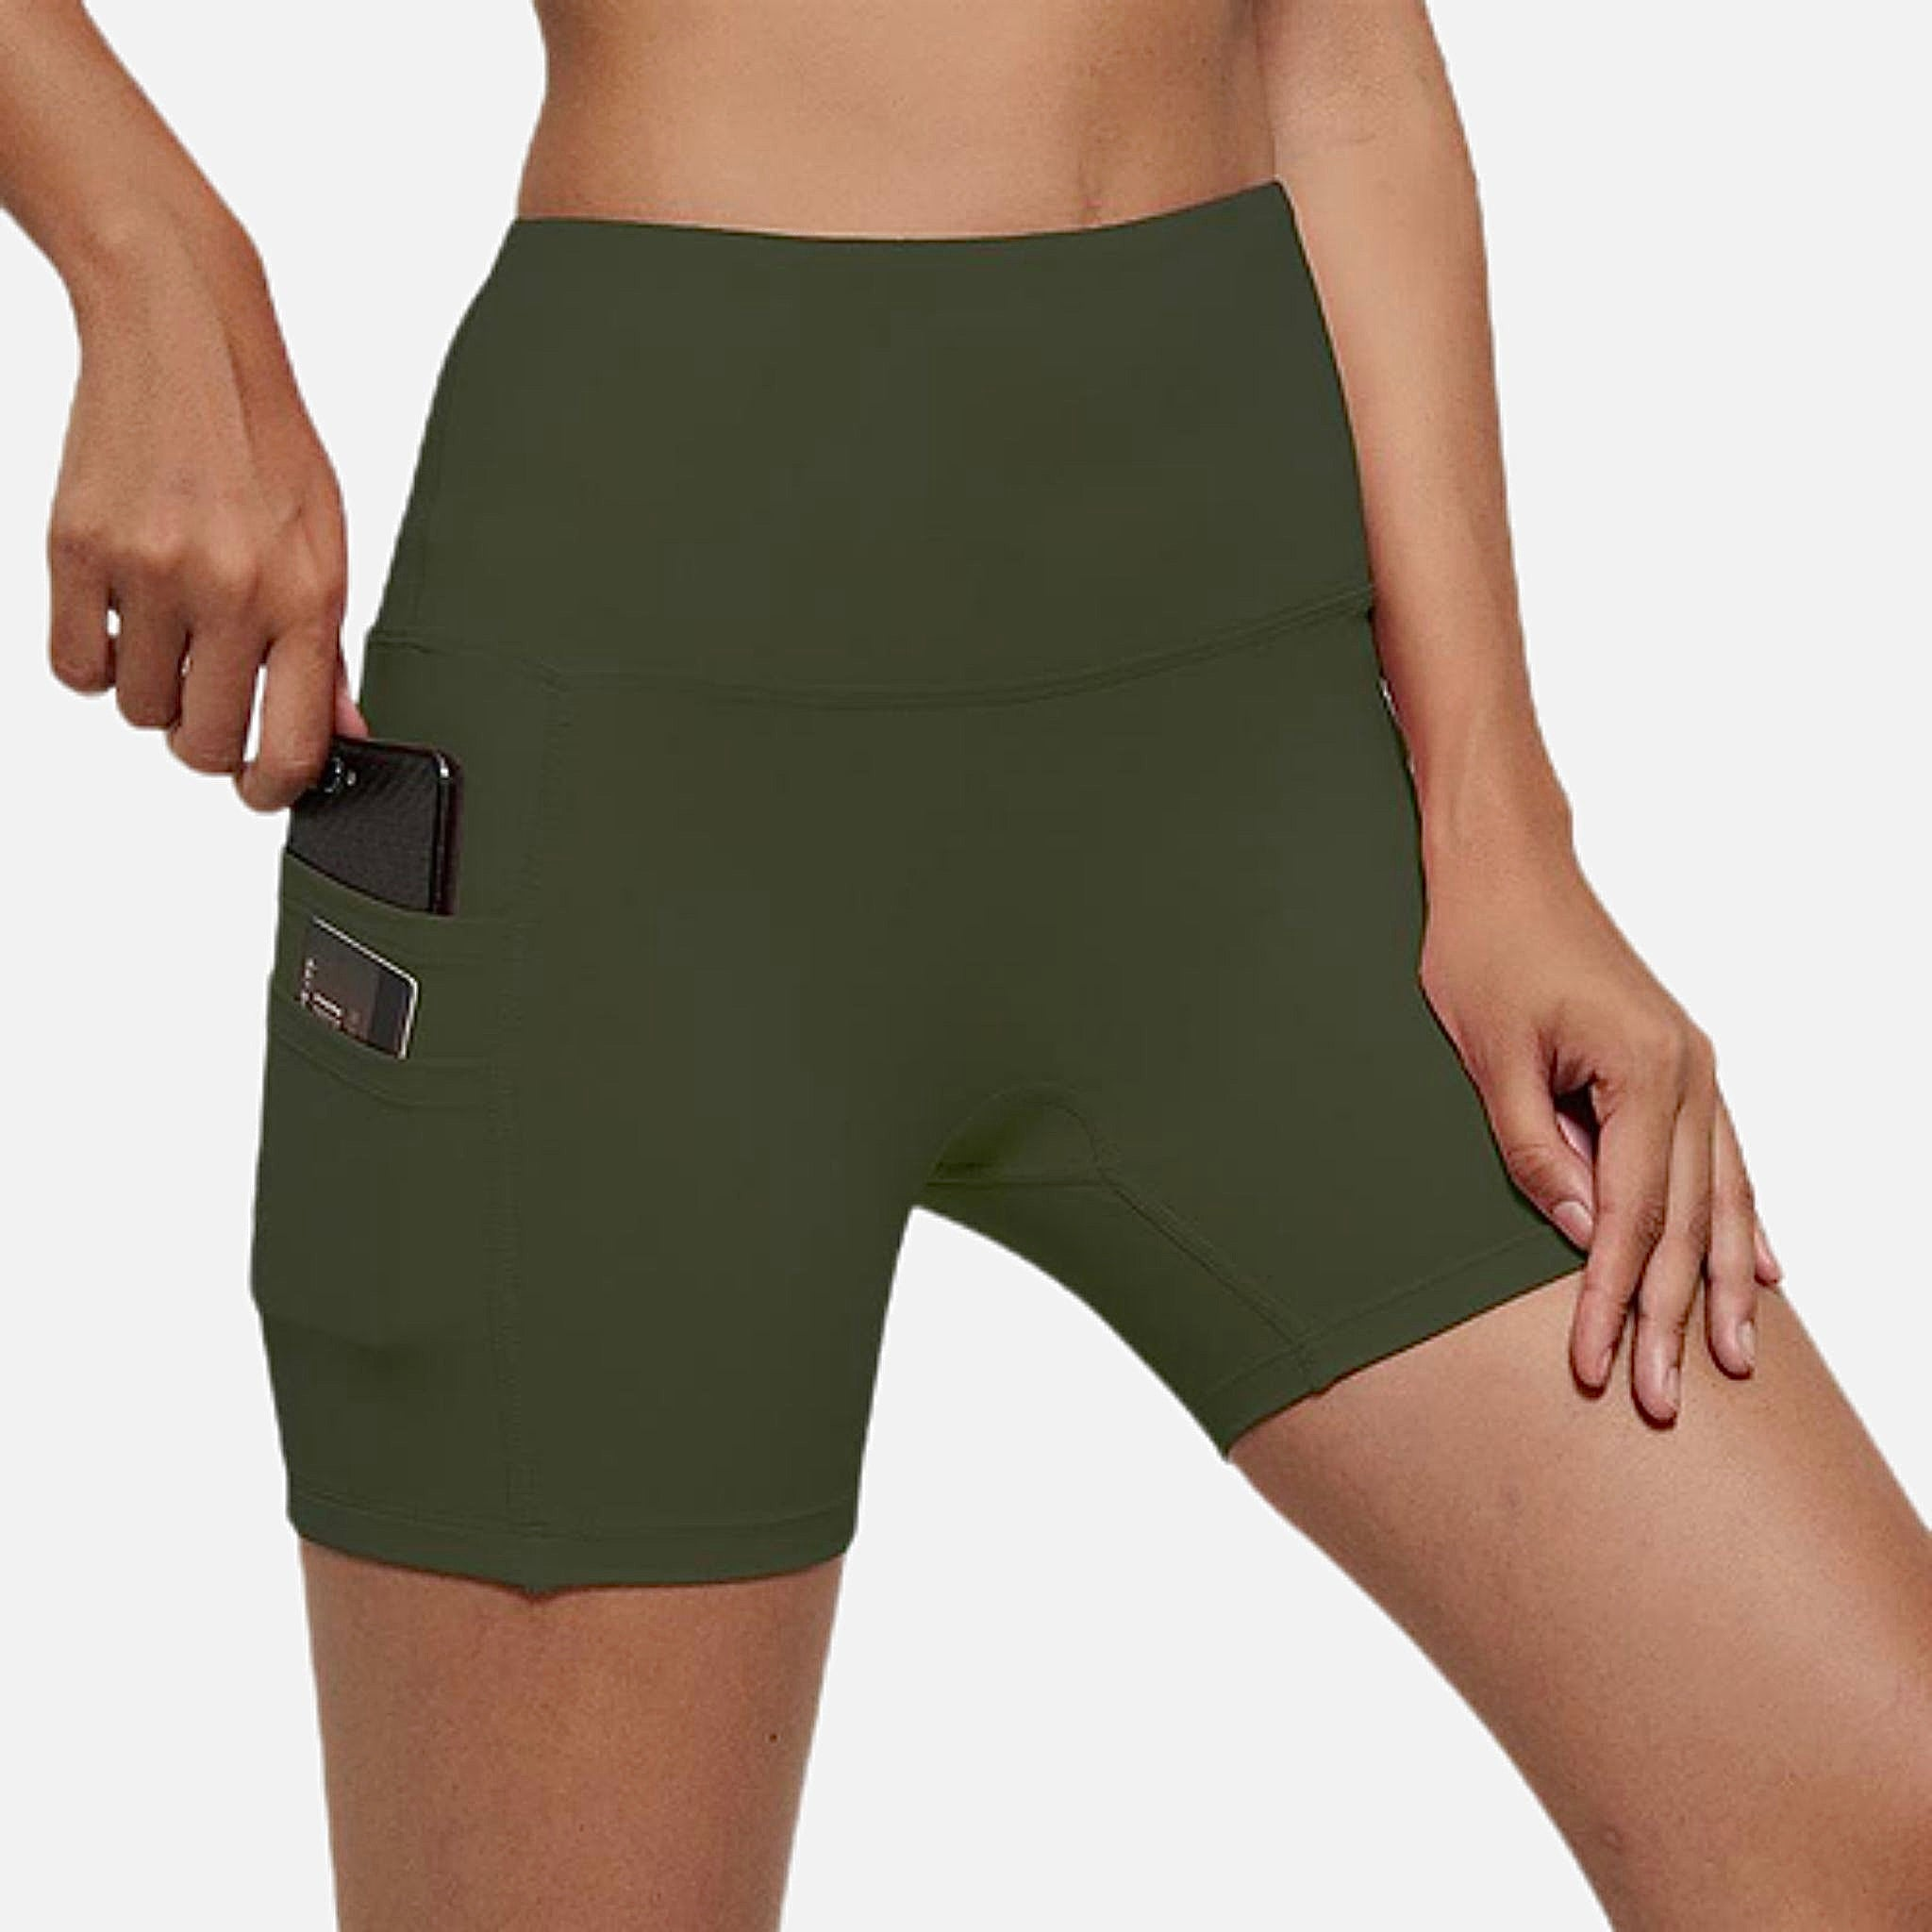 miFit Sports Shorts     Cellphone pocket no camel toe high waist army green buttery-soft plus size Fitness Gym Workout Yoga Athletic Training Sport Women's Shorts Sportswear